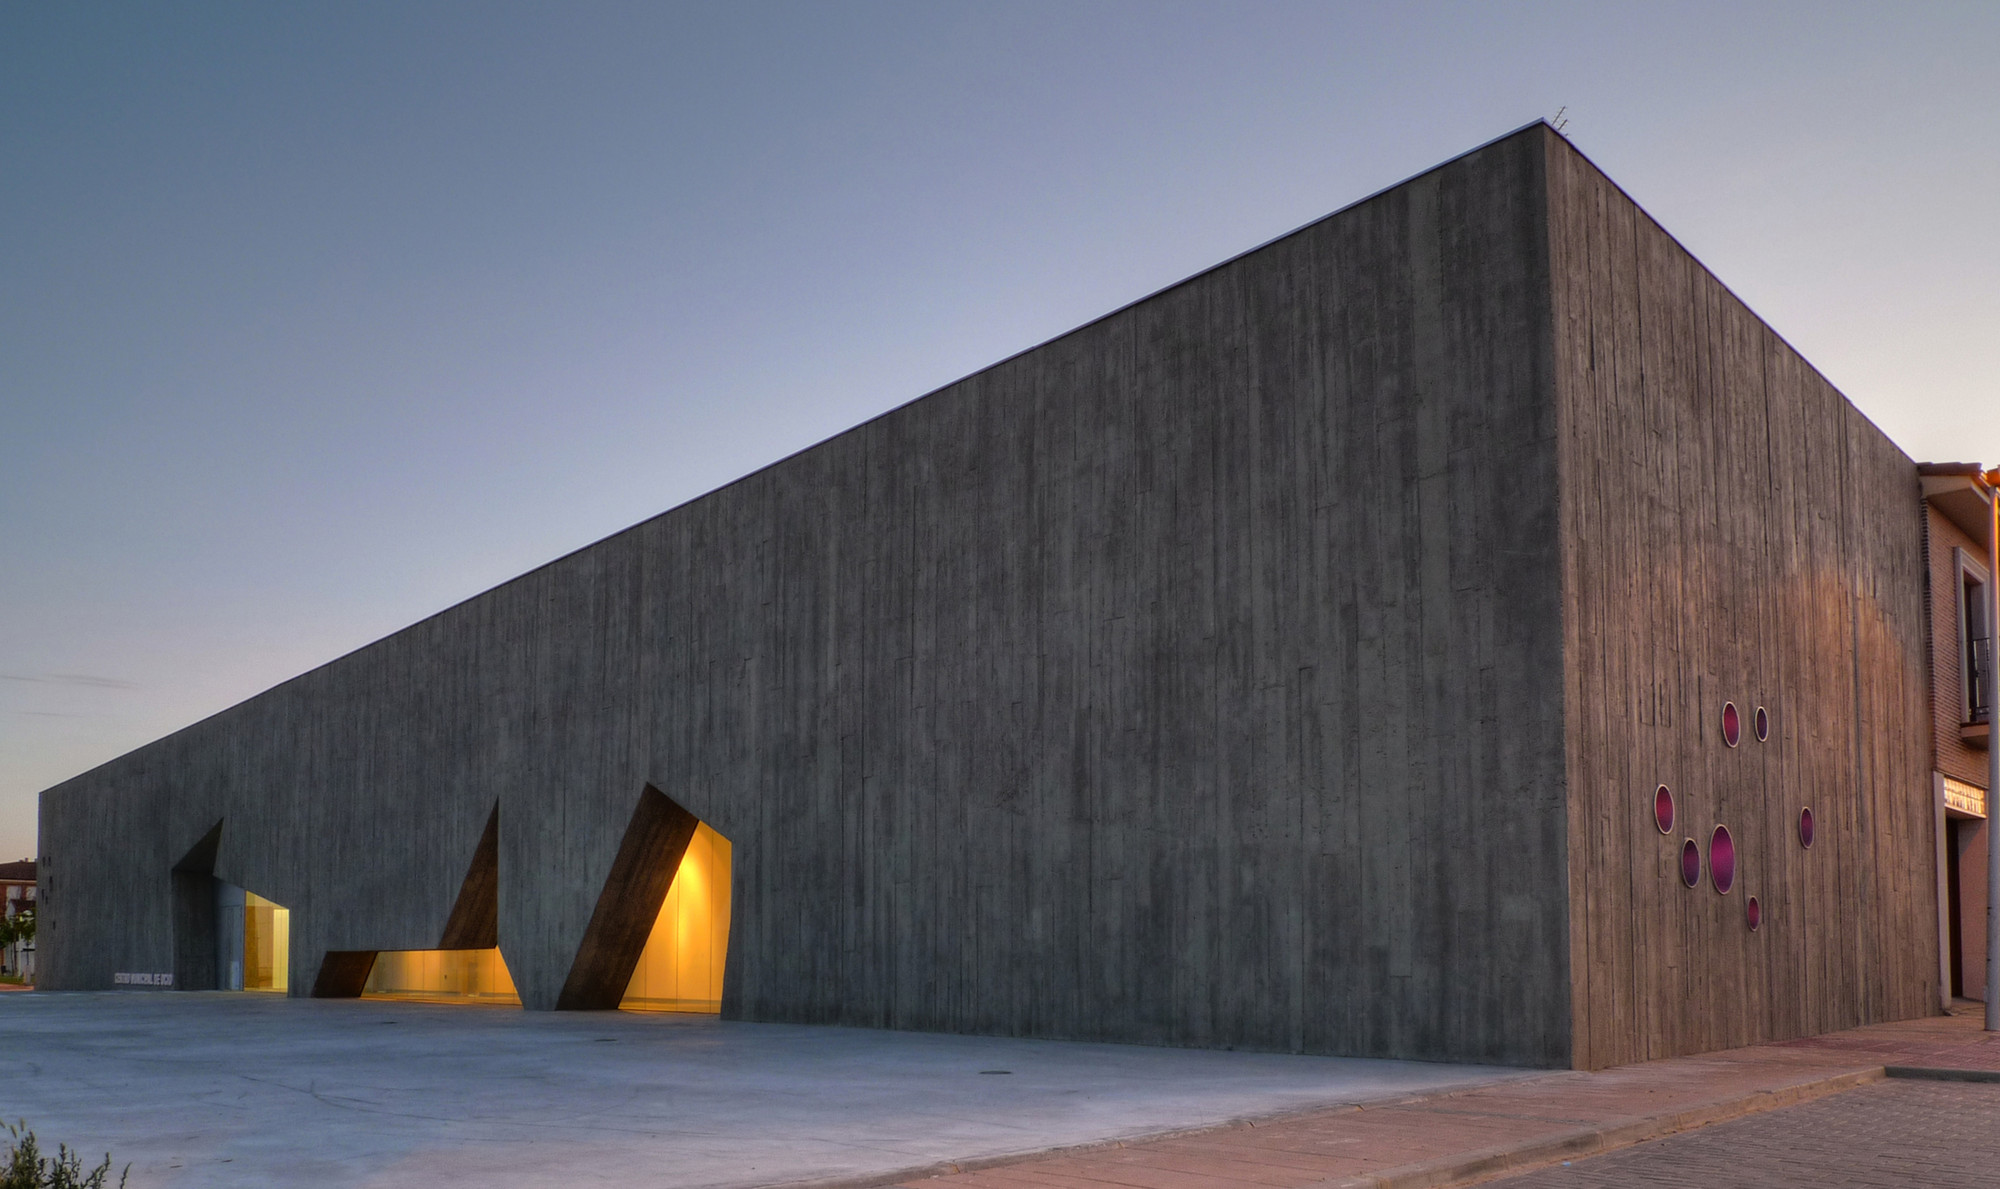 Municipal Leisure Center In Tordesillas / ENTREARQUITECTURA, Courtesy of ENTREARQUITECTURA